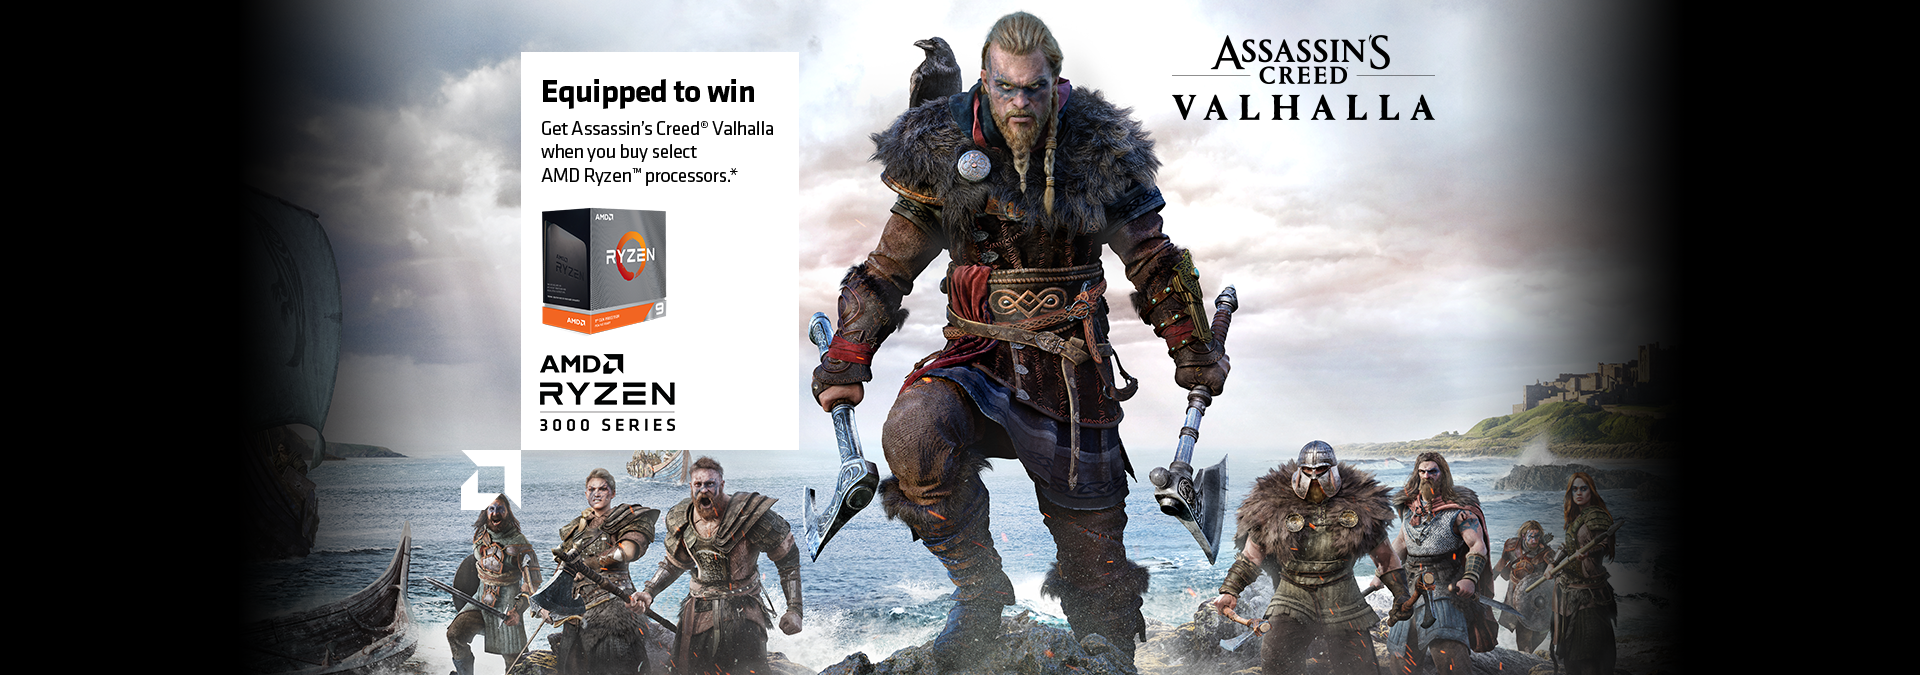 Equipped to win. Get Assassin's Creed® Valhalla when you buy select AMD Ryzen™ processors.*